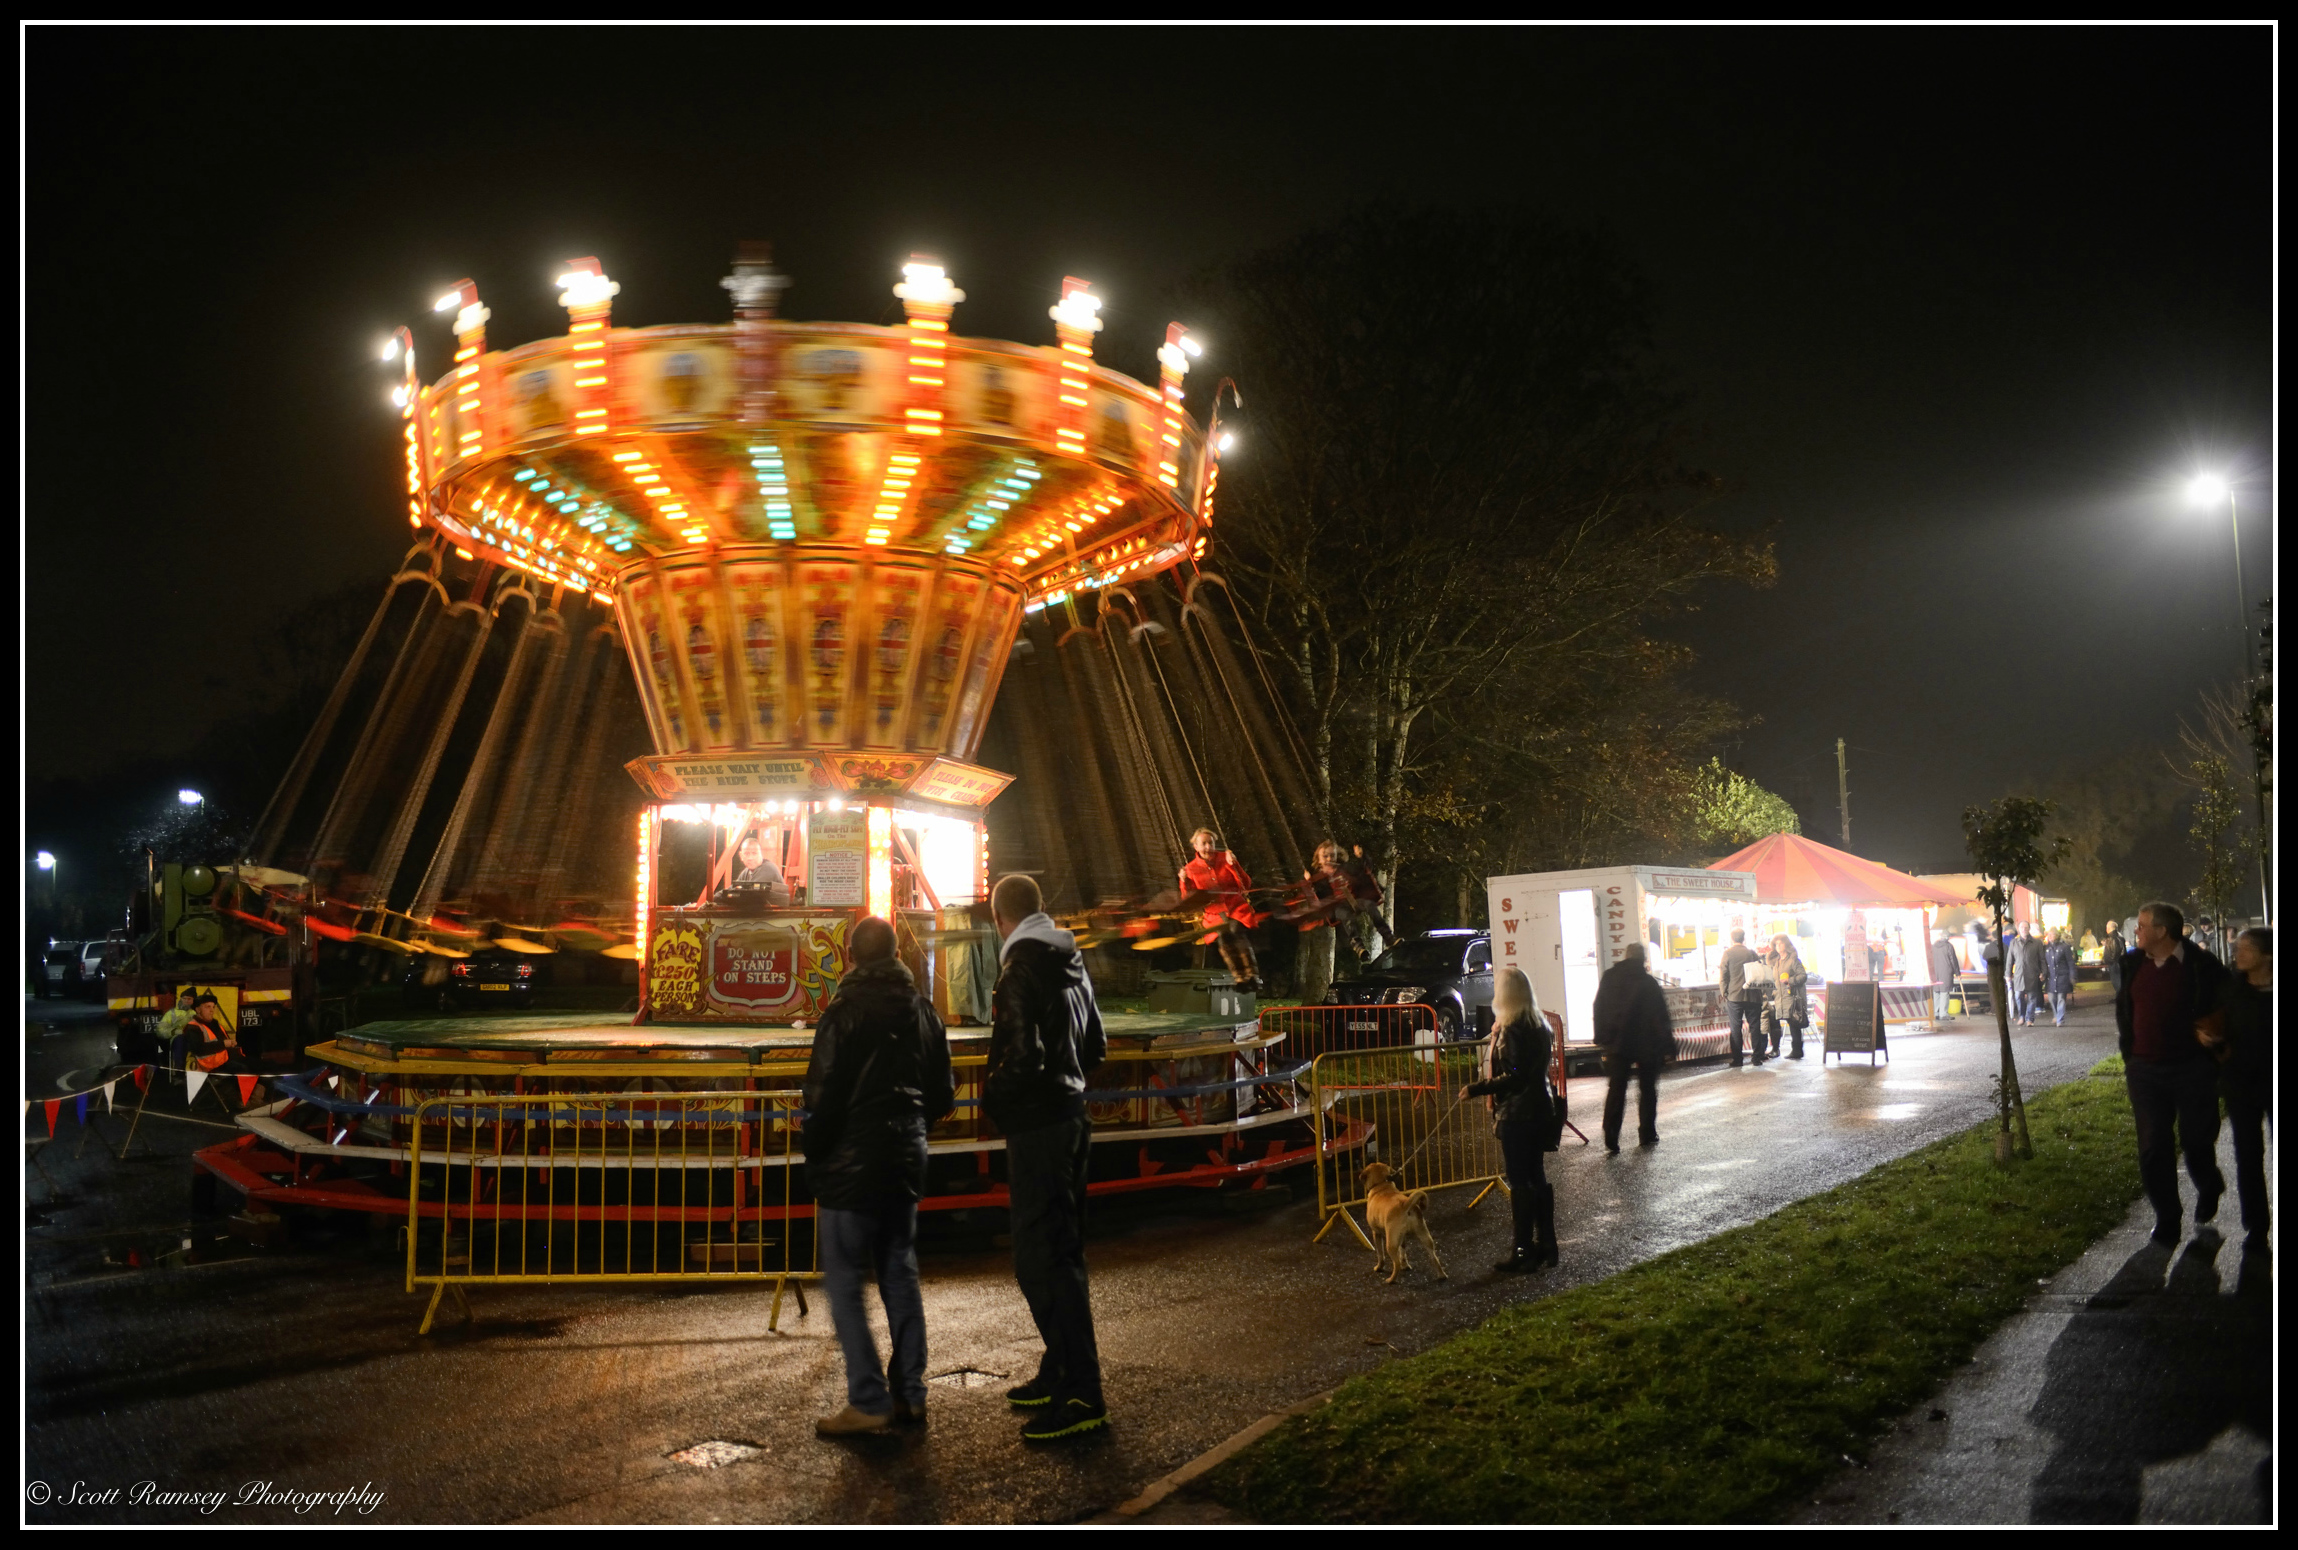 Lights are blurred as a traditional fun fair ride spins at night during the Christmas Celebrations in East Preston, West Sussex.